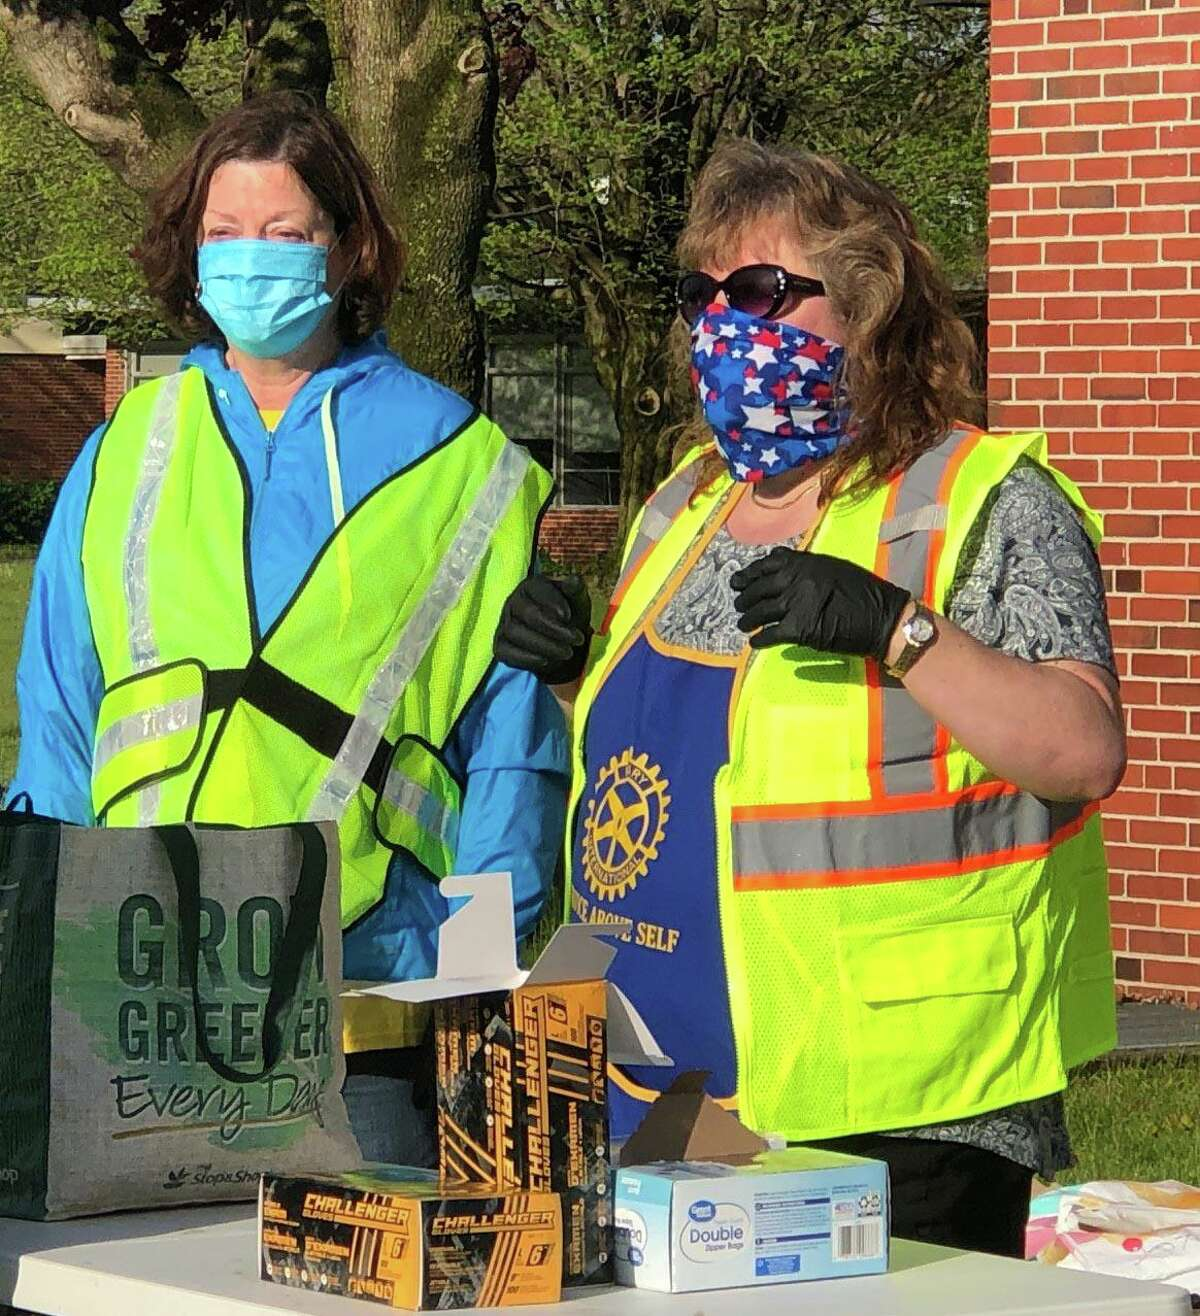 Rotarians Sharon Ward, left, and co-coordinator of the event Lori Gordon, oversee the tables to replenish stock.